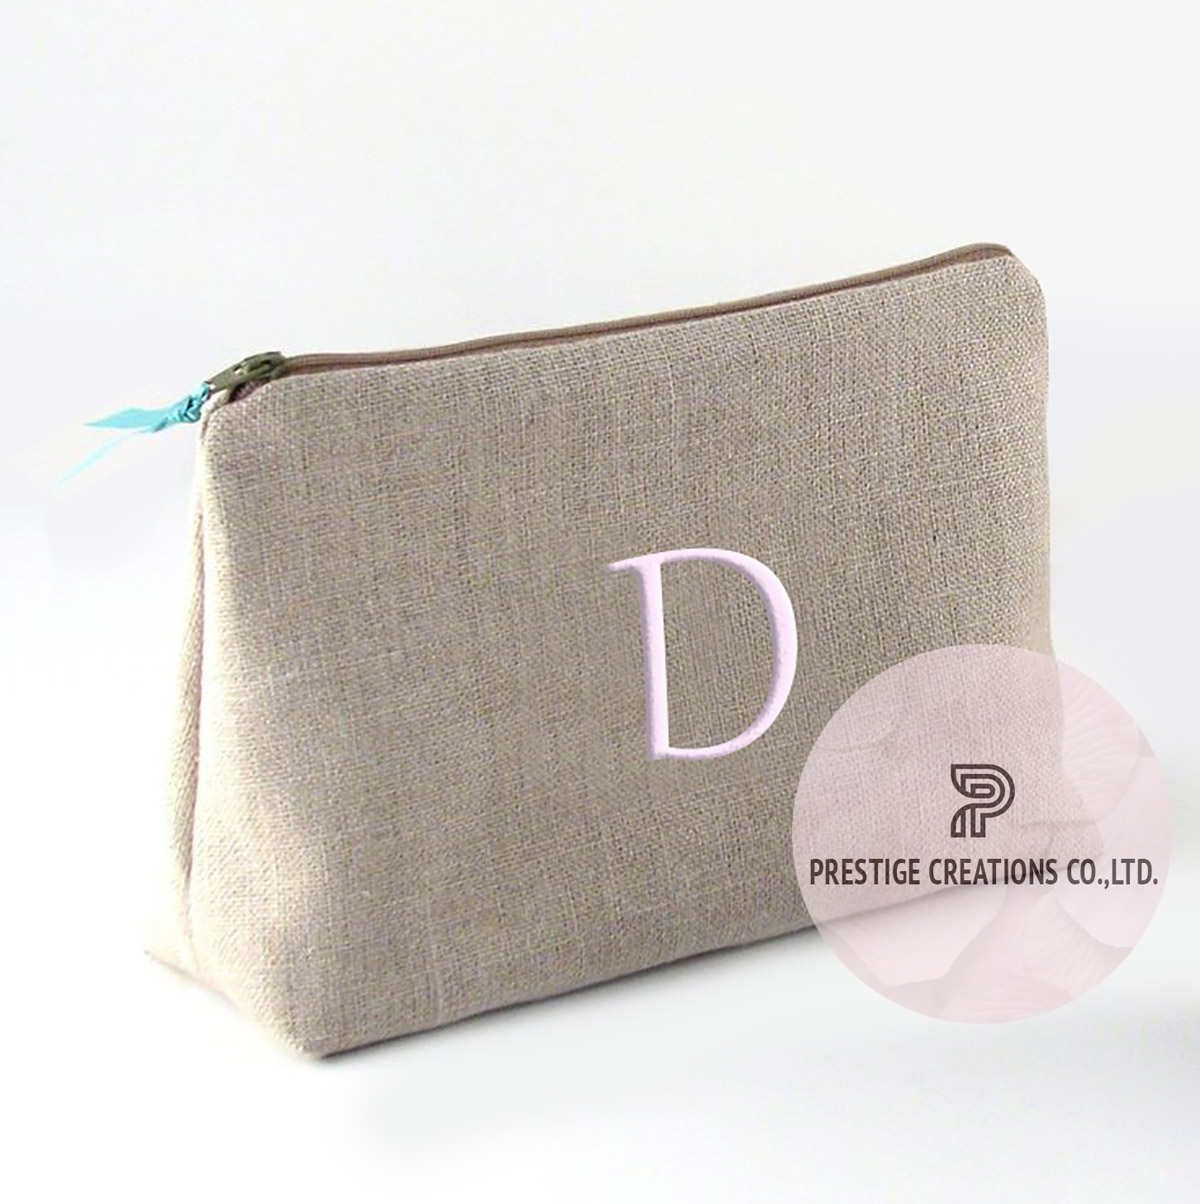 Embroidered Cotton Cosmetic Bag With Personalized Monogram